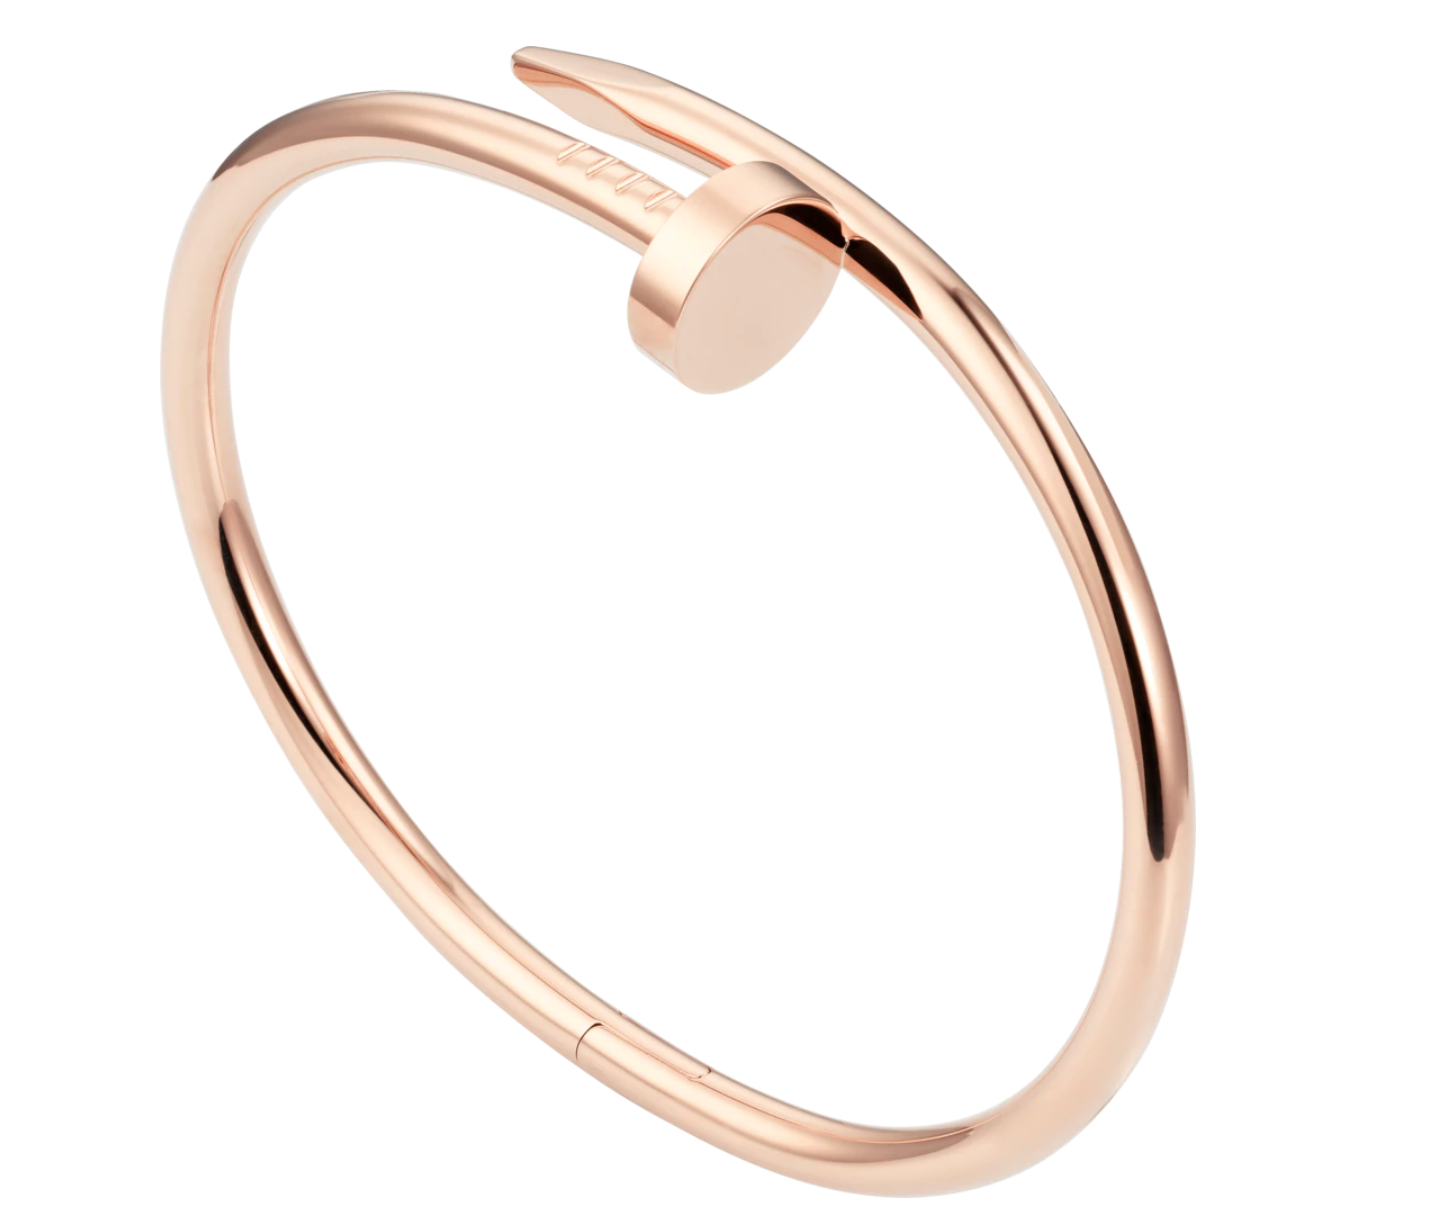 Juste un Clou Bracelet in Pink Gold from Cartier $6,800